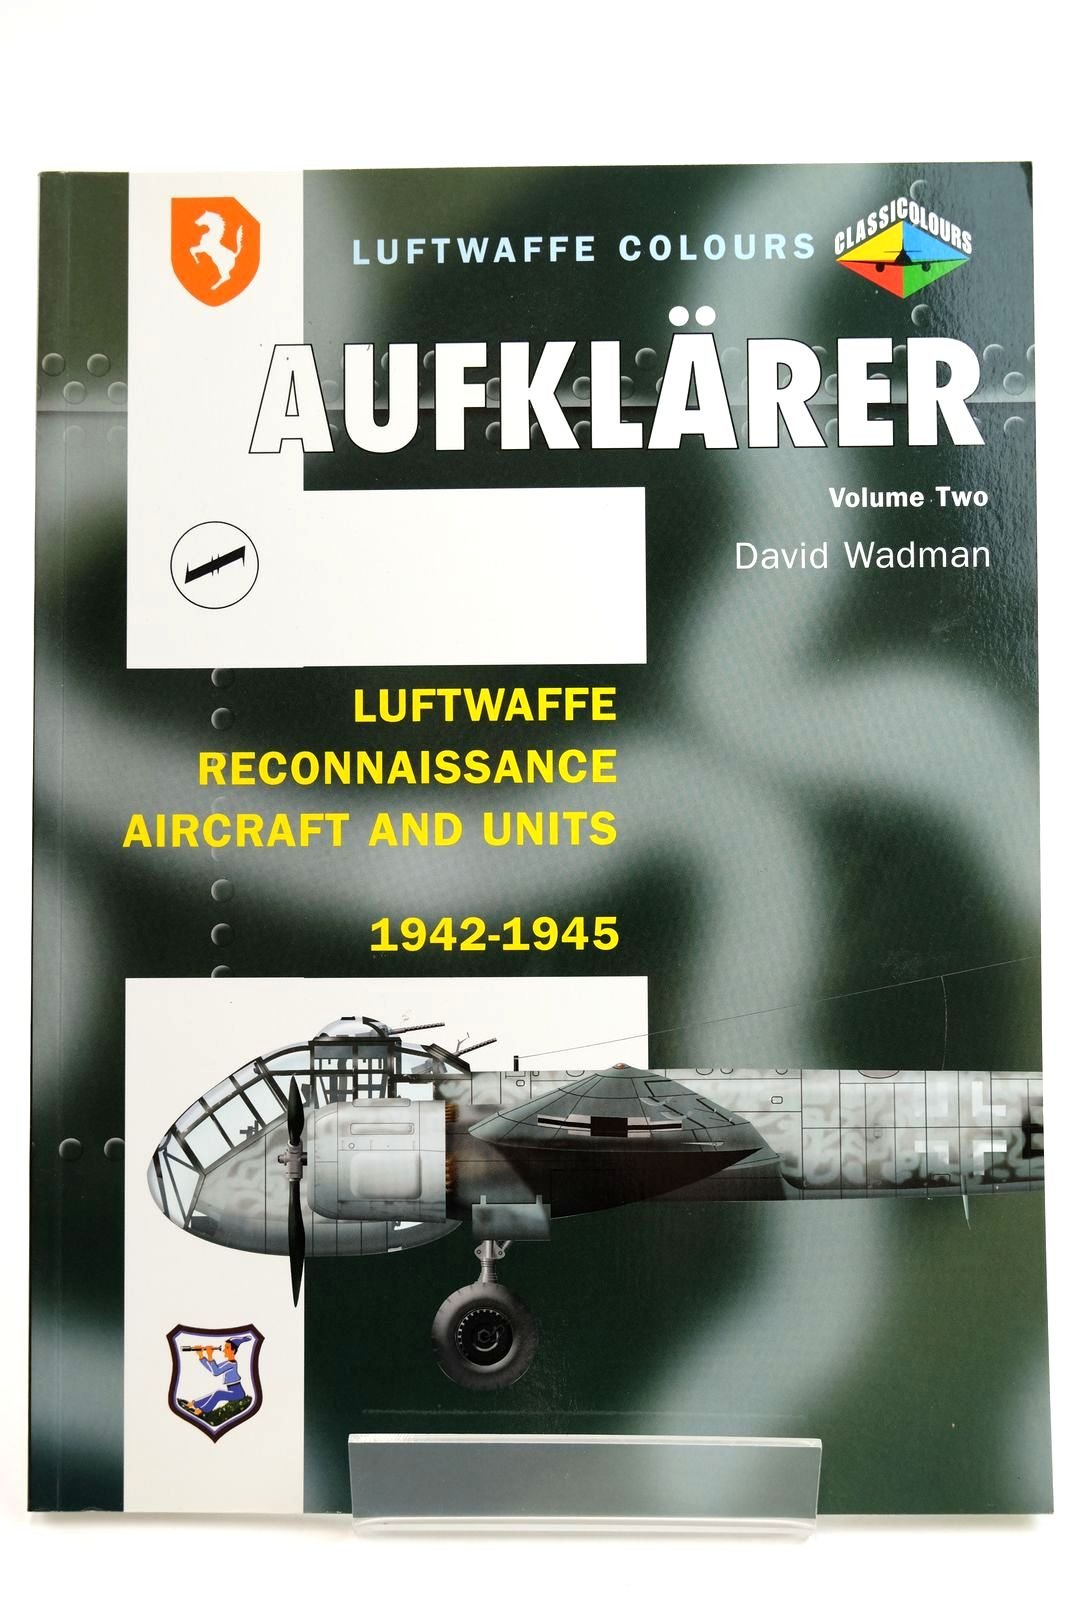 Photo of AUFKLARER VOLUME TWO LUFTWAFFE RECONNAISSANCE AIRCRAFT AND UNITES 1942-1945 written by Wadman, David published by Midland Publishing (STOCK CODE: 2132217)  for sale by Stella & Rose's Books